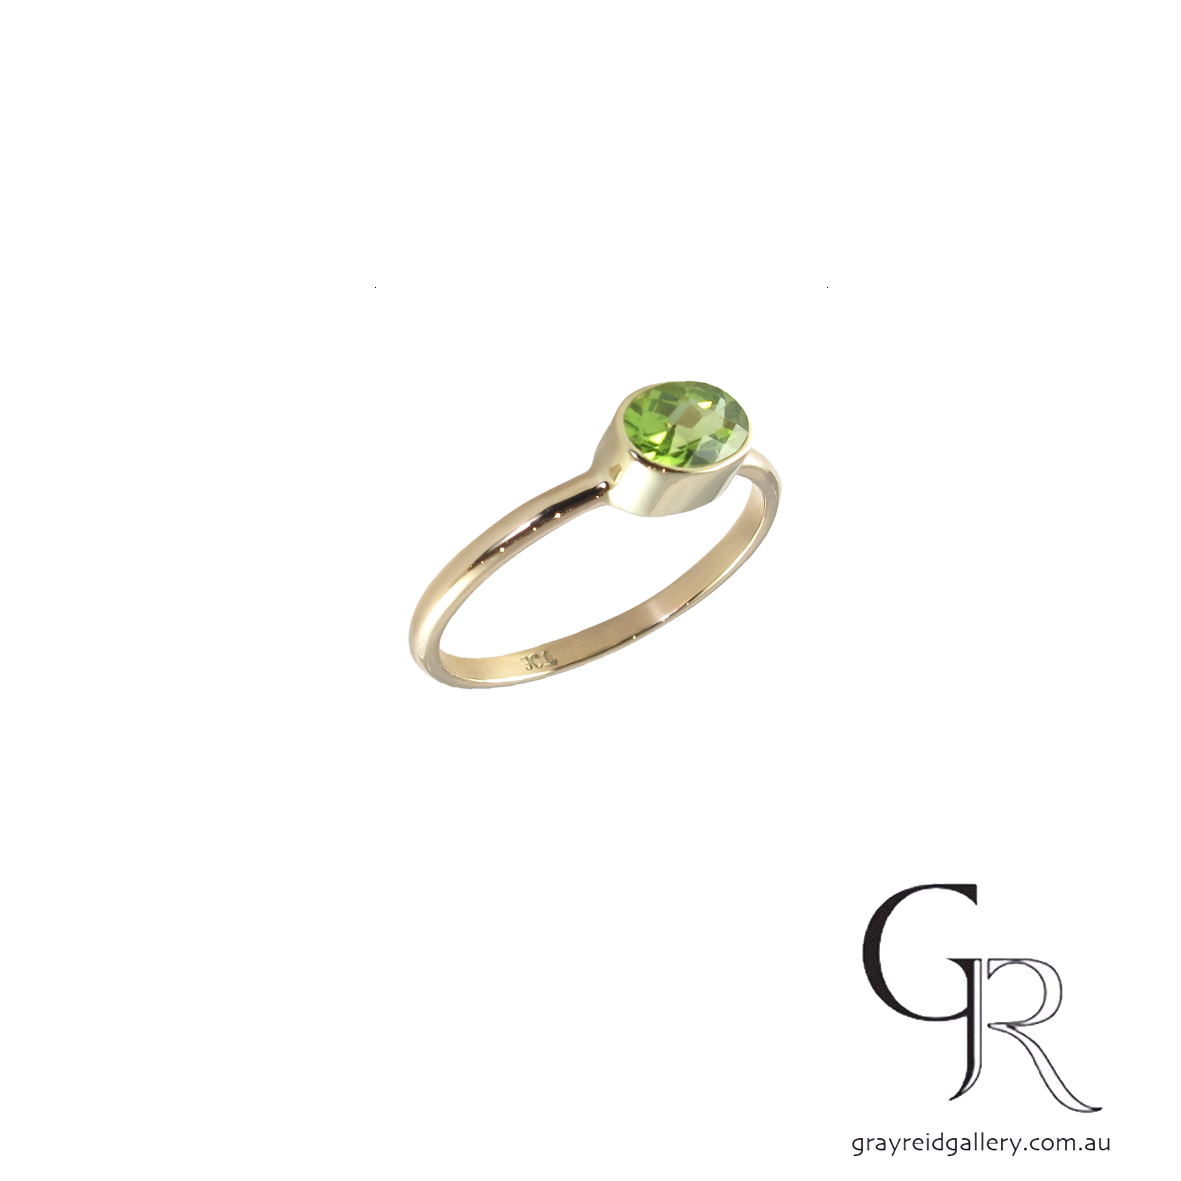 custom made 9ct gold chrysoprase ring gray reid gallery 6778 B.jpg